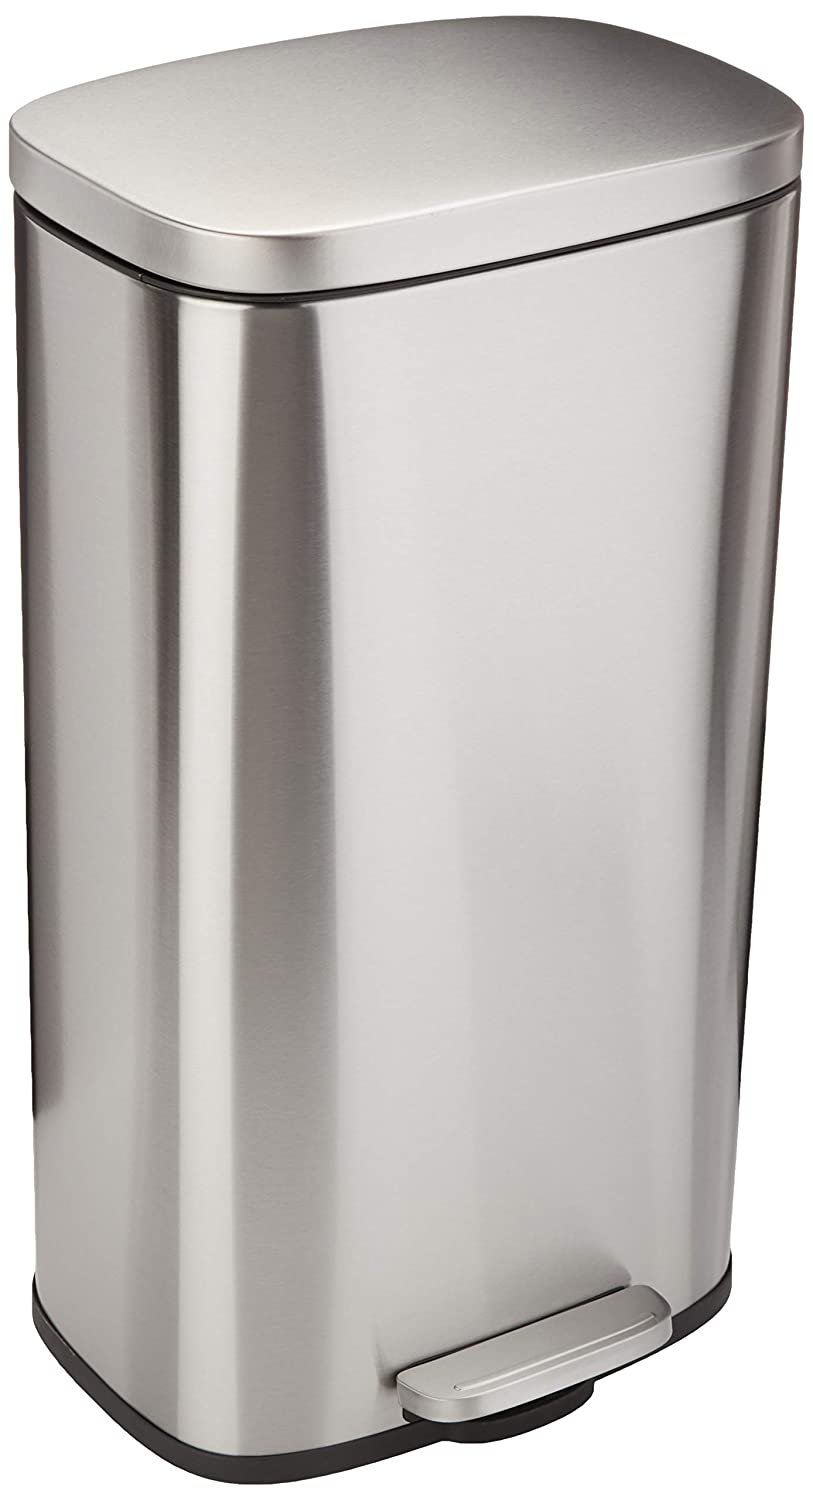 AmazonBasics Rectangle Soft-Close Trash Can - 30L, Satin Nickel